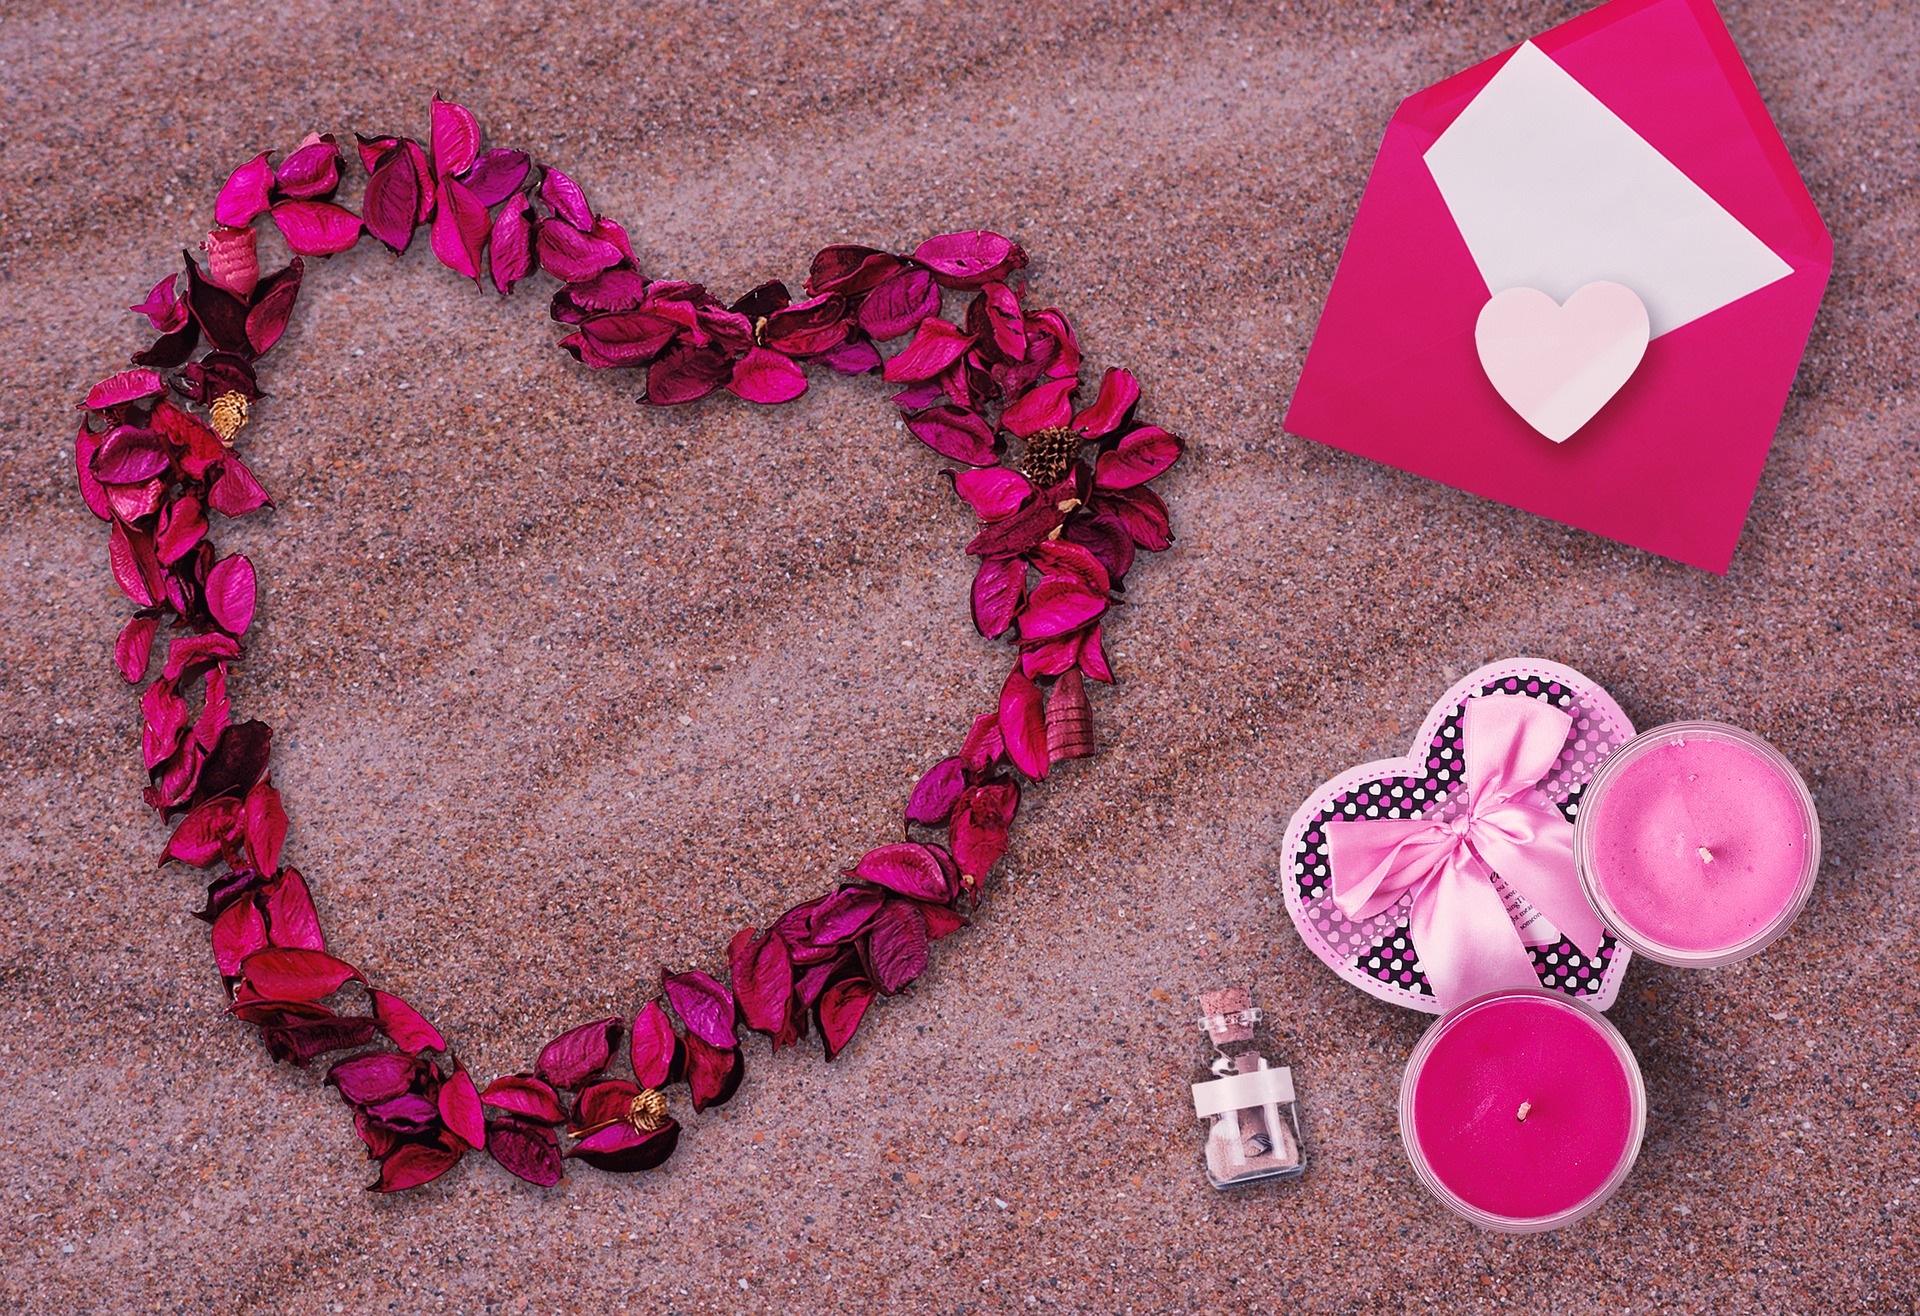 beach flowers pink petals sand wedding